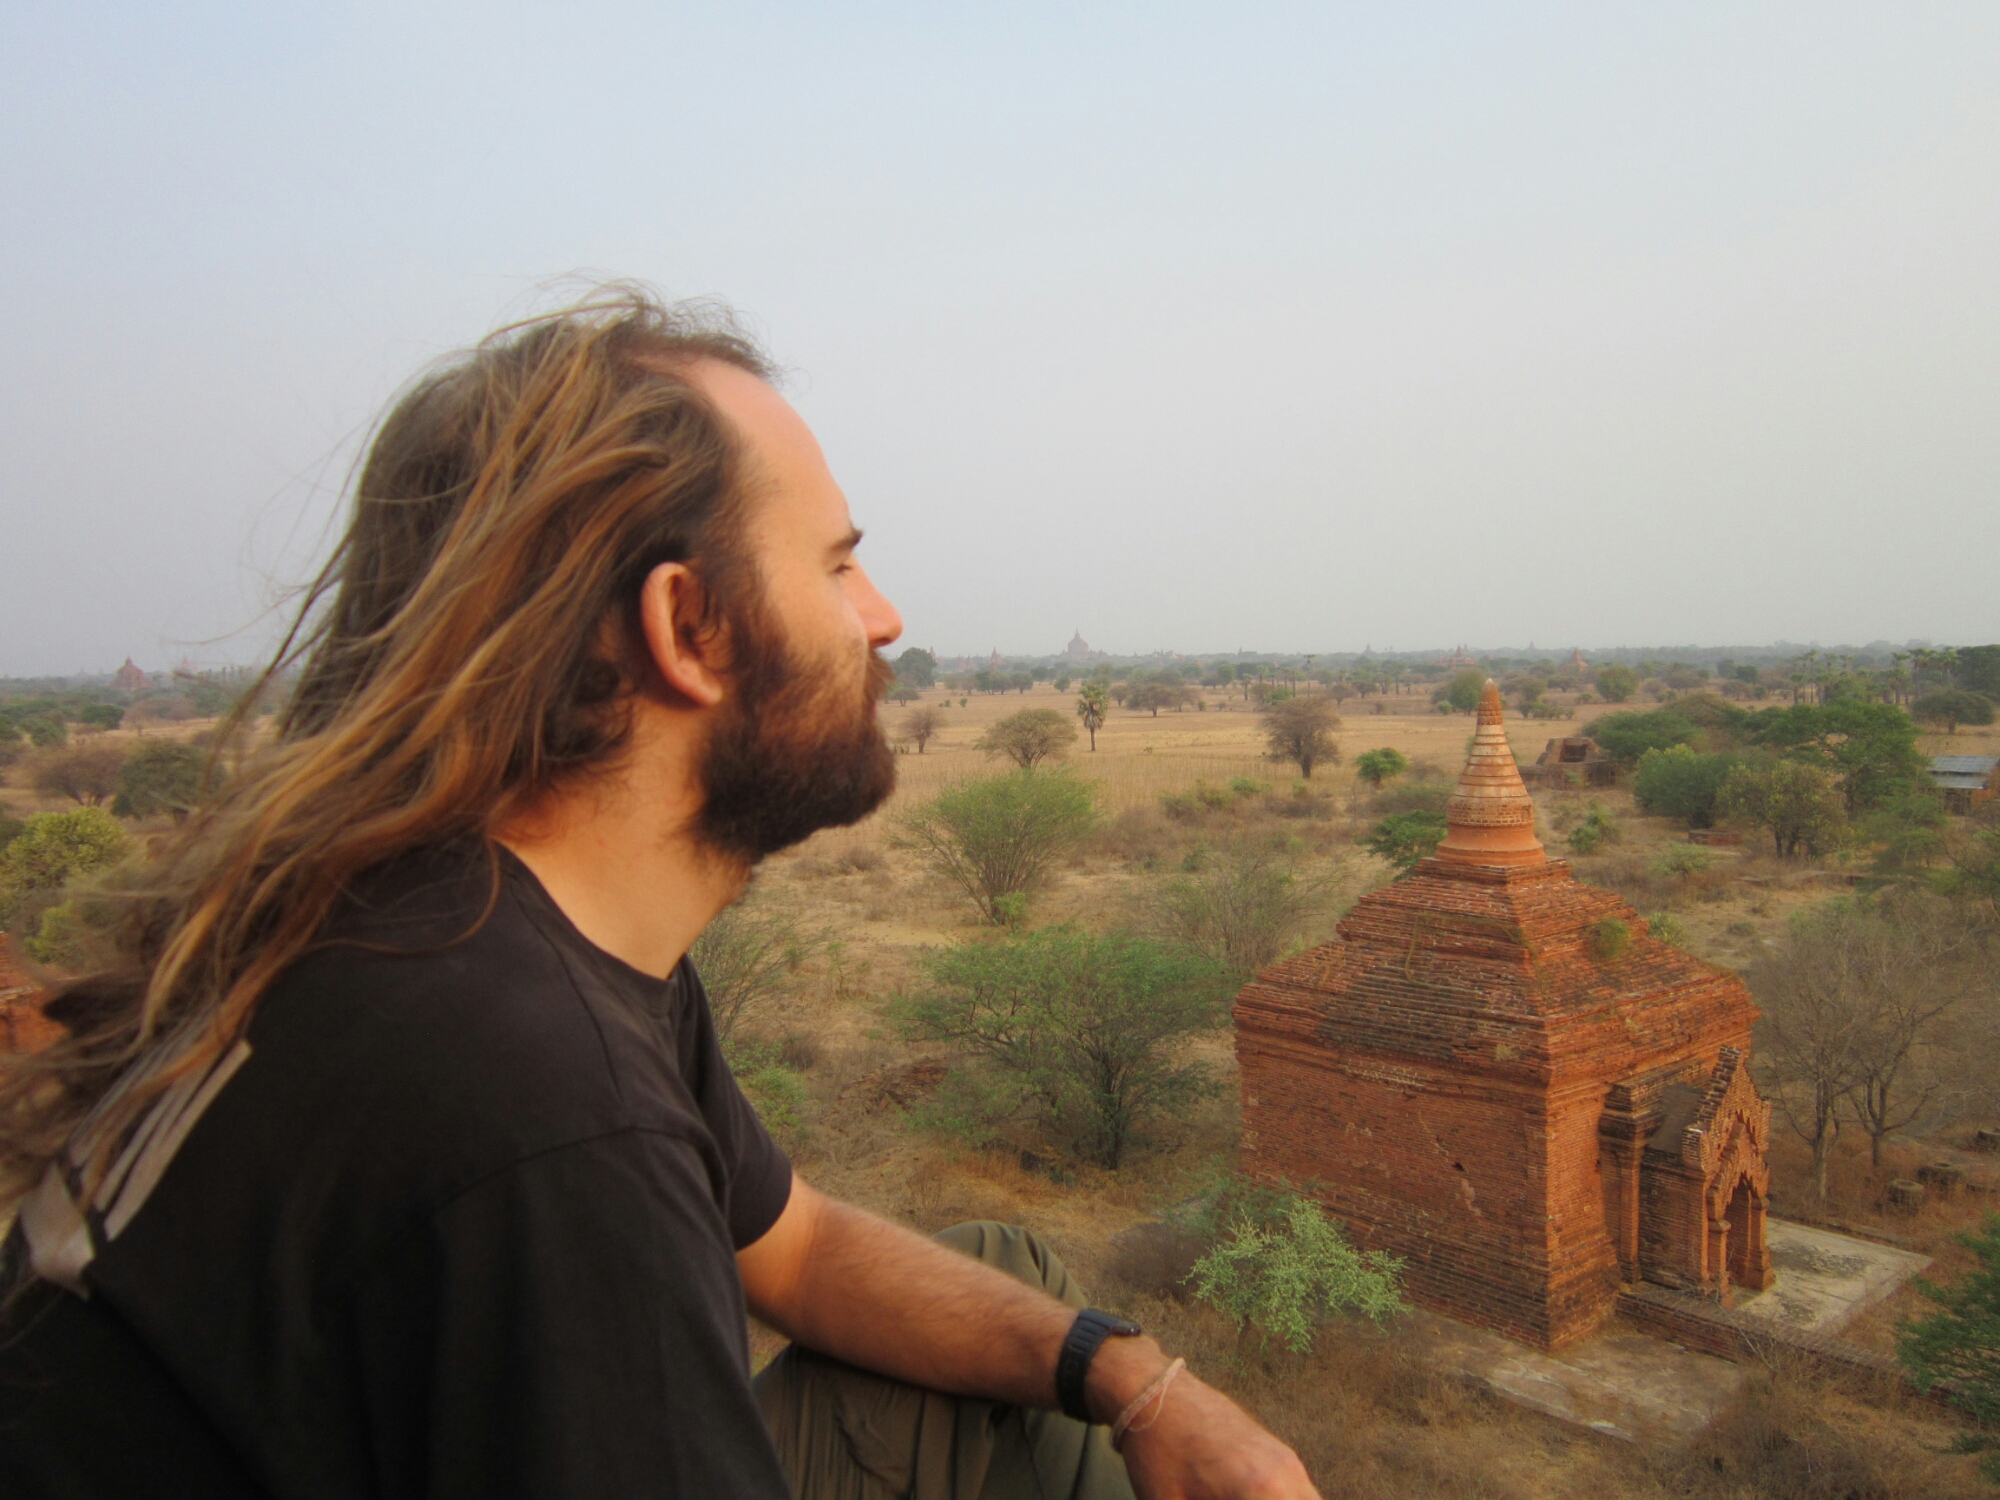 Me looking out at the temple of Bagan